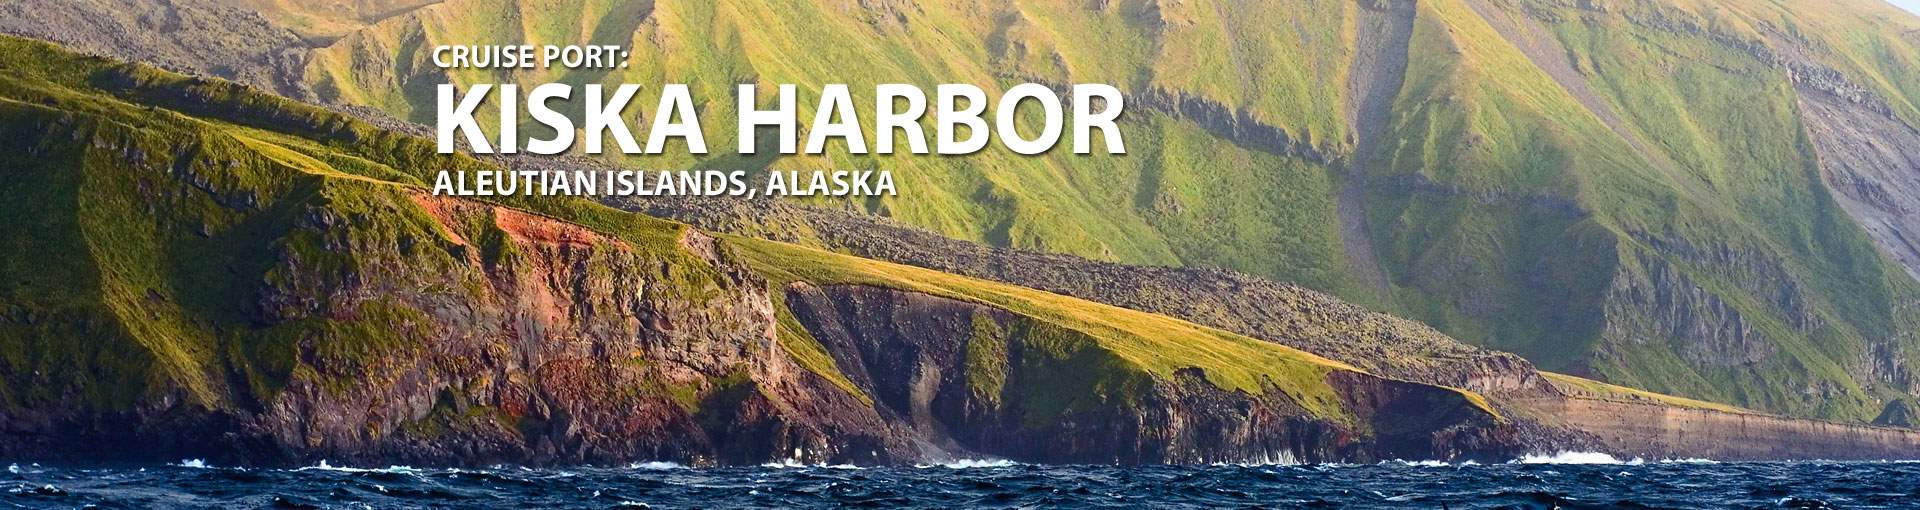 Cruises to Kiska Harbor, Aleutian Islands, Alaska